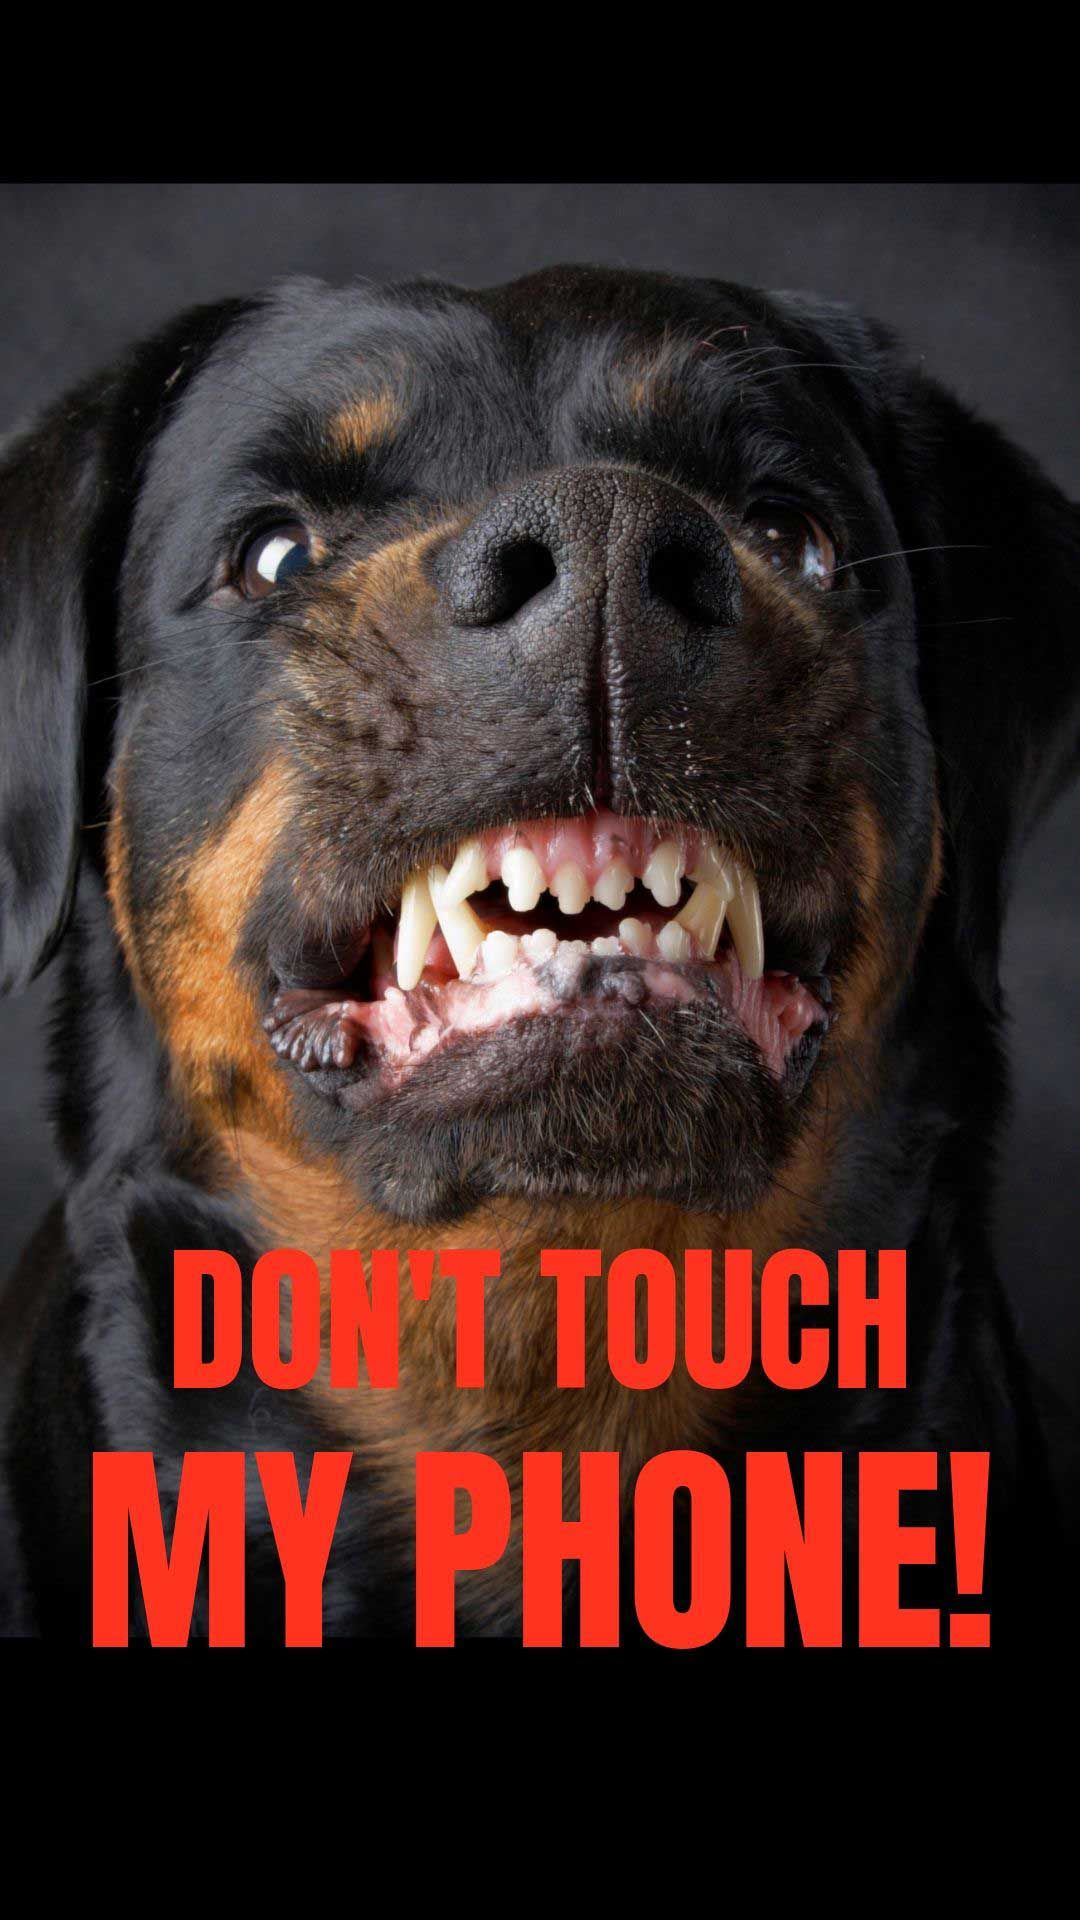 20 Free Dog Wallpapers I Phone And Android 20 Hd Sized Homescreen Wallpaper Dog Pictures Dont Touch My Phone Wallpapers Don T Touch My Phone Funny Phone Wallpaper